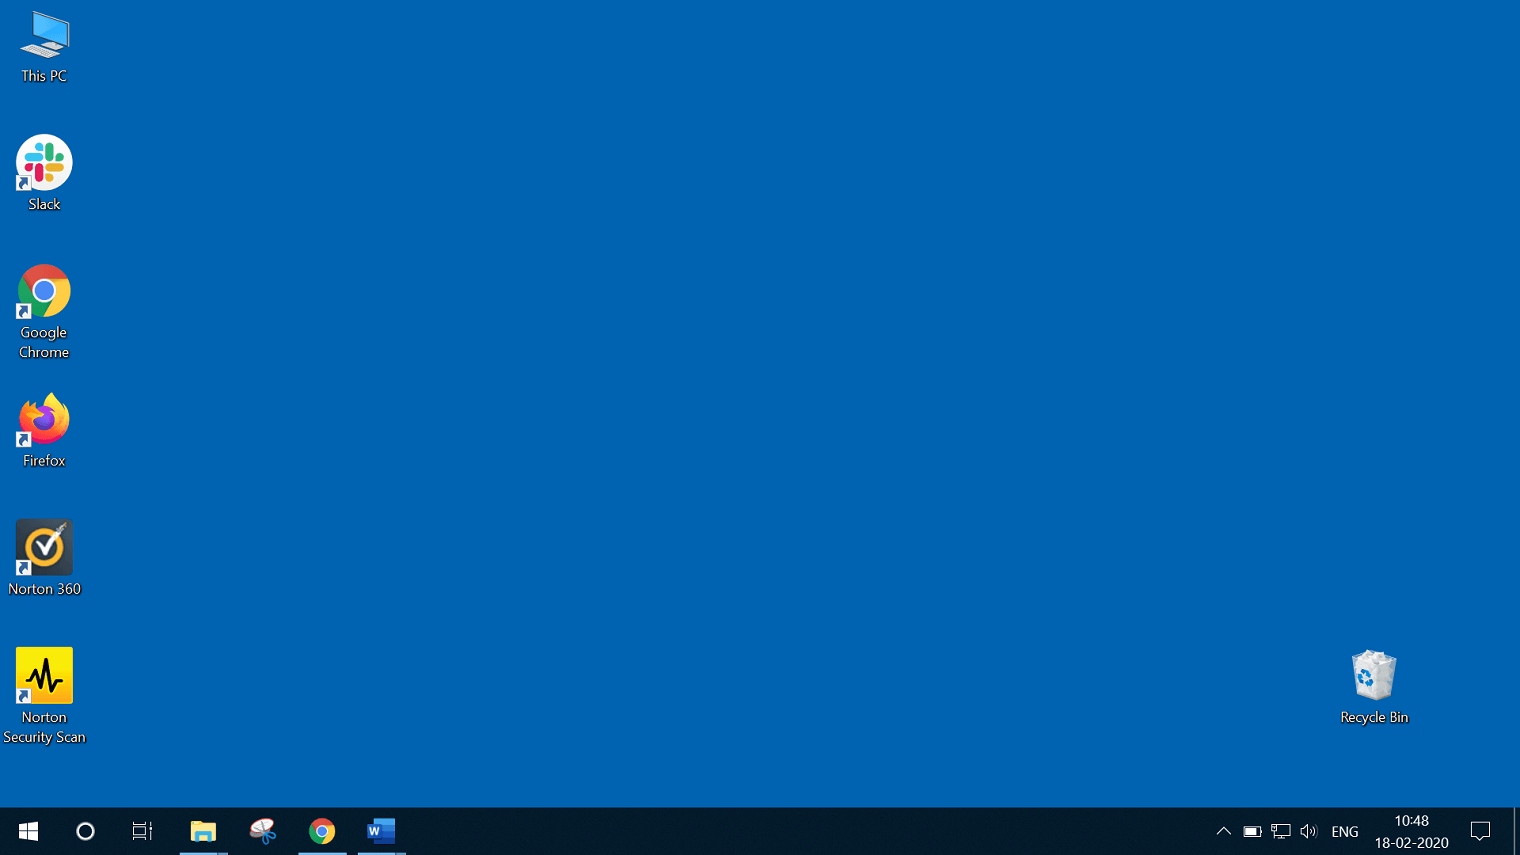 Hold the left mouse button and drag the taskbar to its new position wherever you want, like left, right, top, or bottom of the screen. Now, release the mouse button, and the taskbar will come to its new or default position on the screen(whatever you choose).